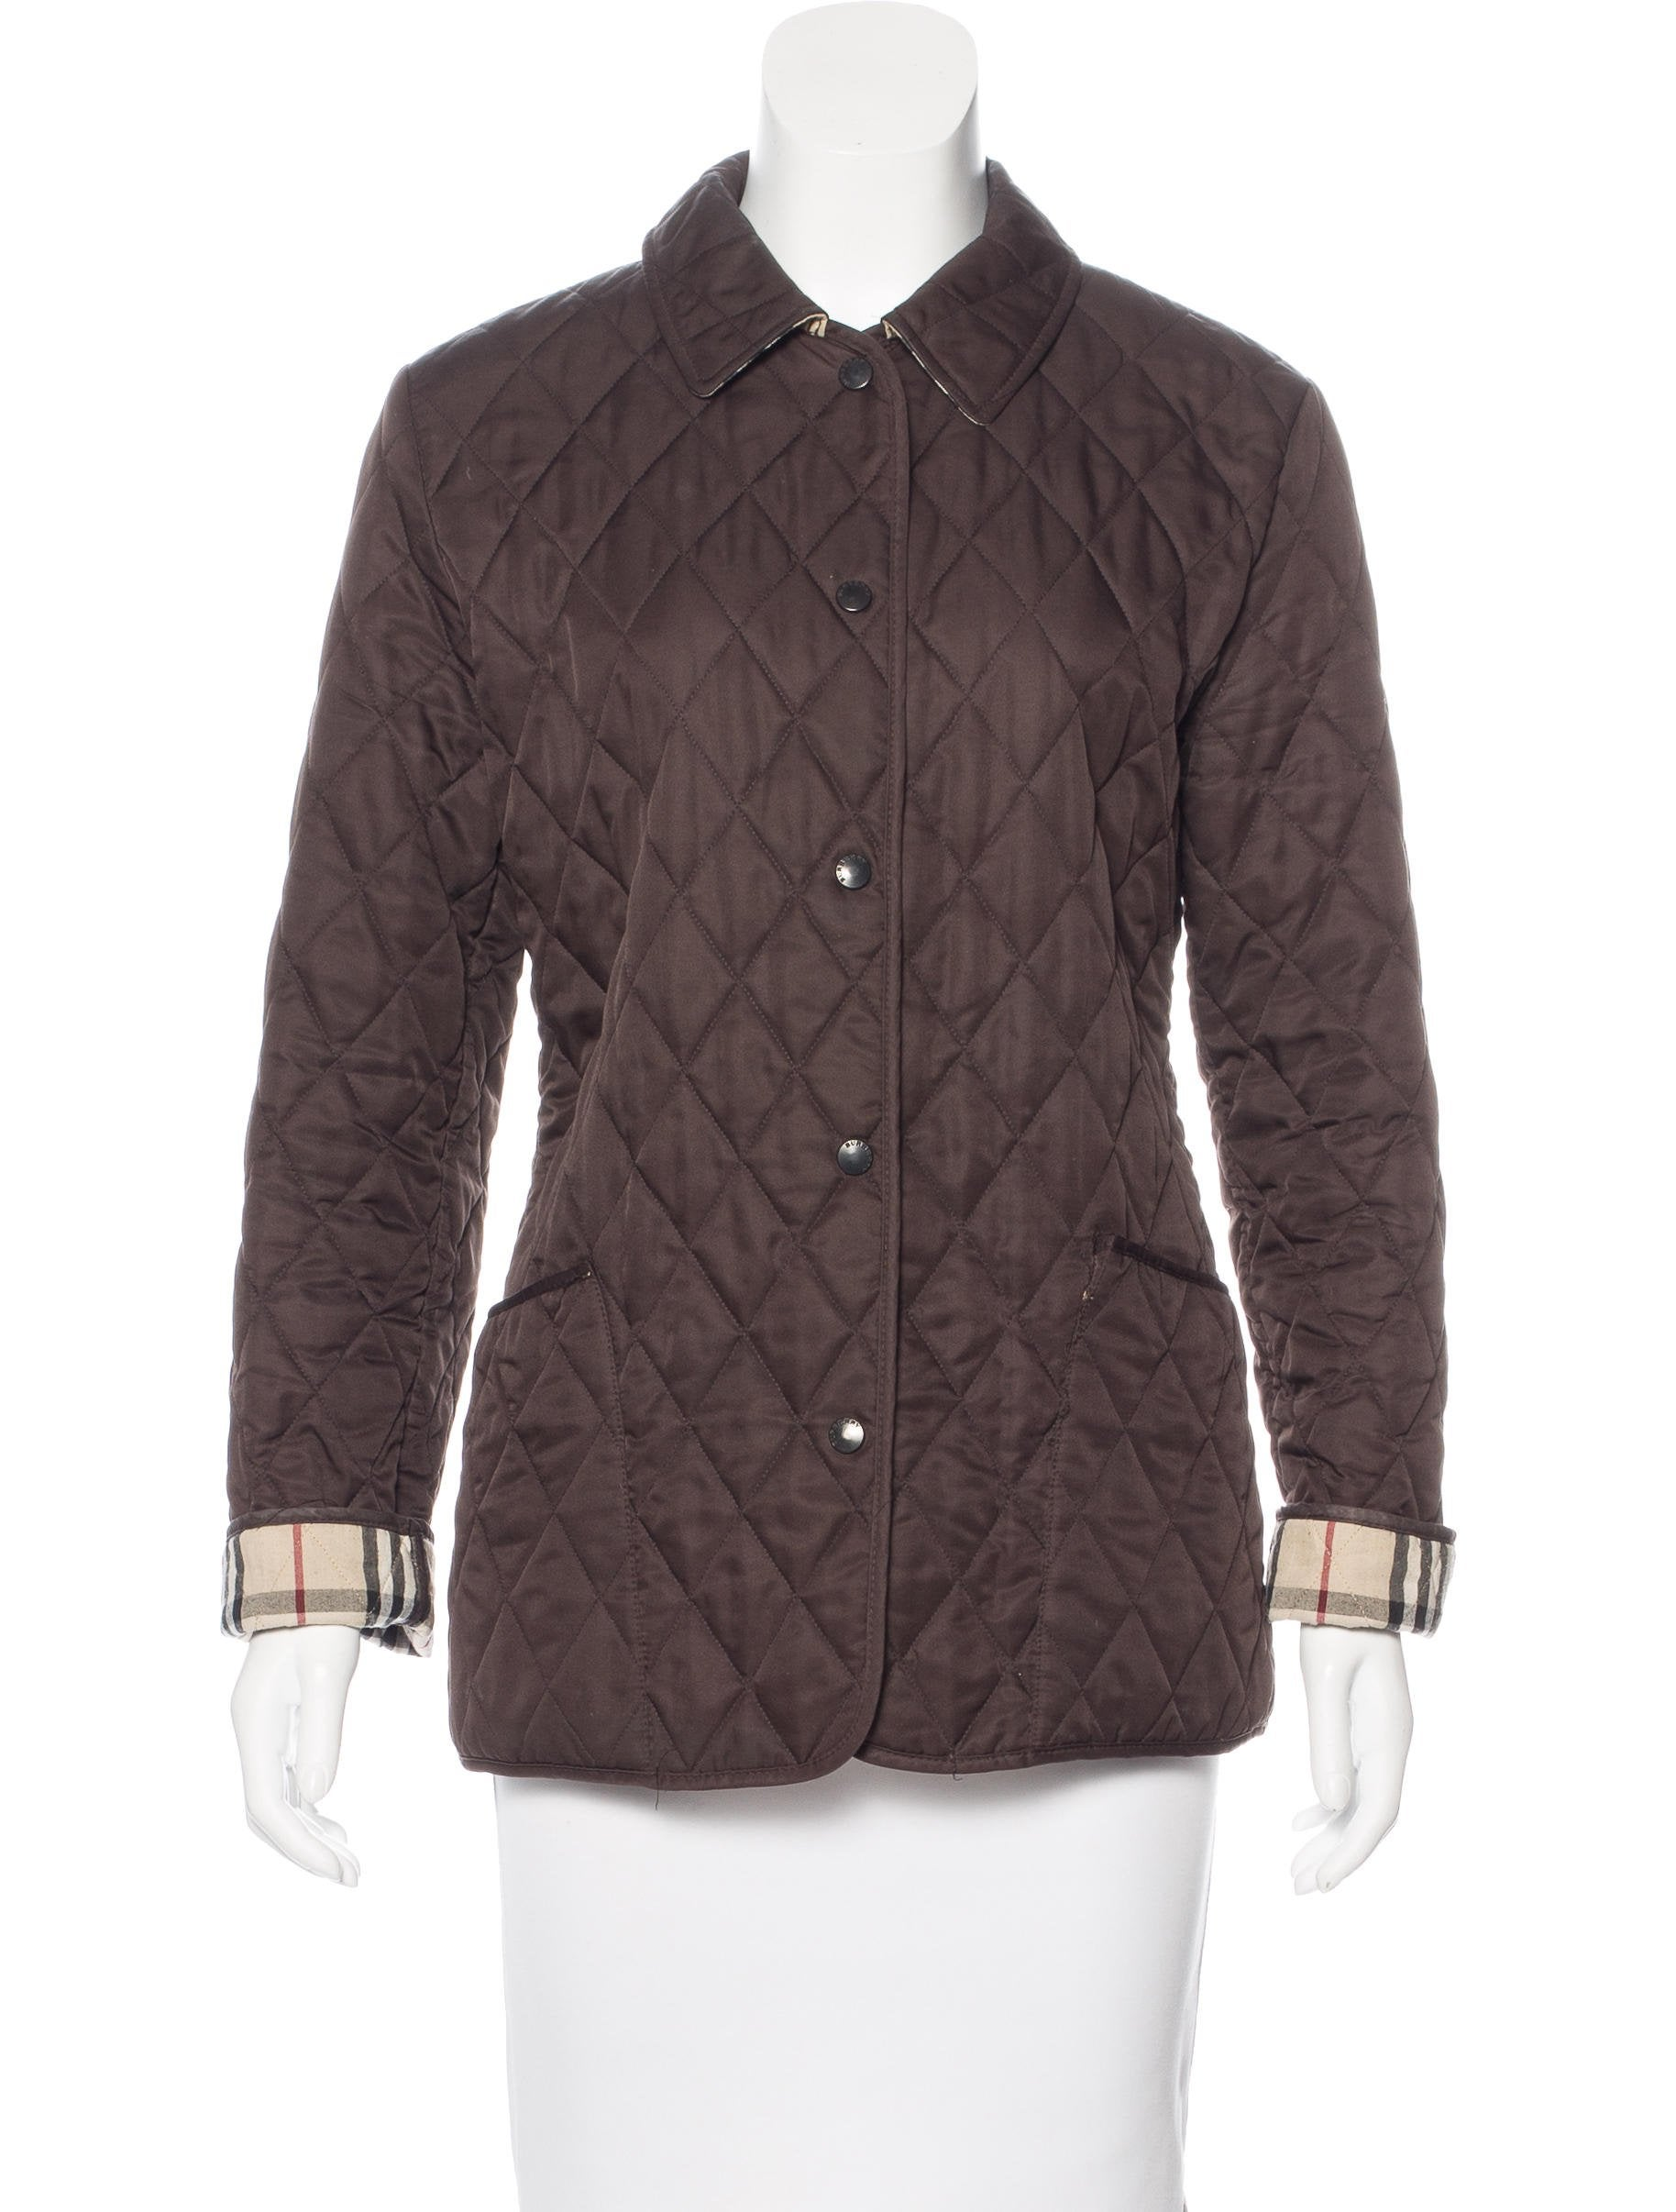 Burberry Lightweight Quilted Jacket Clothing Bur76460